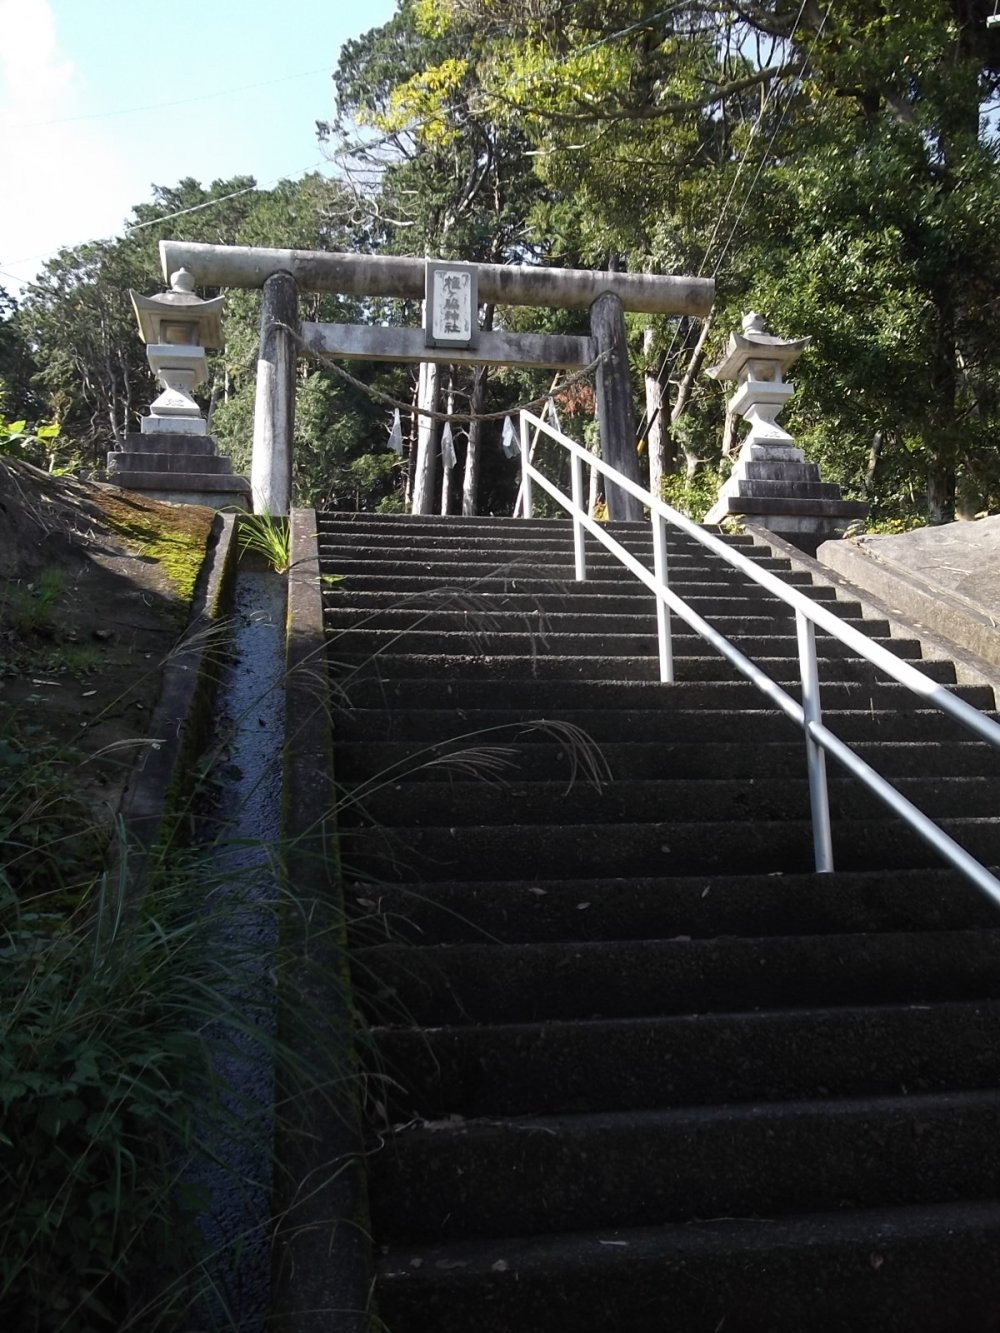 The steps up to the shrine